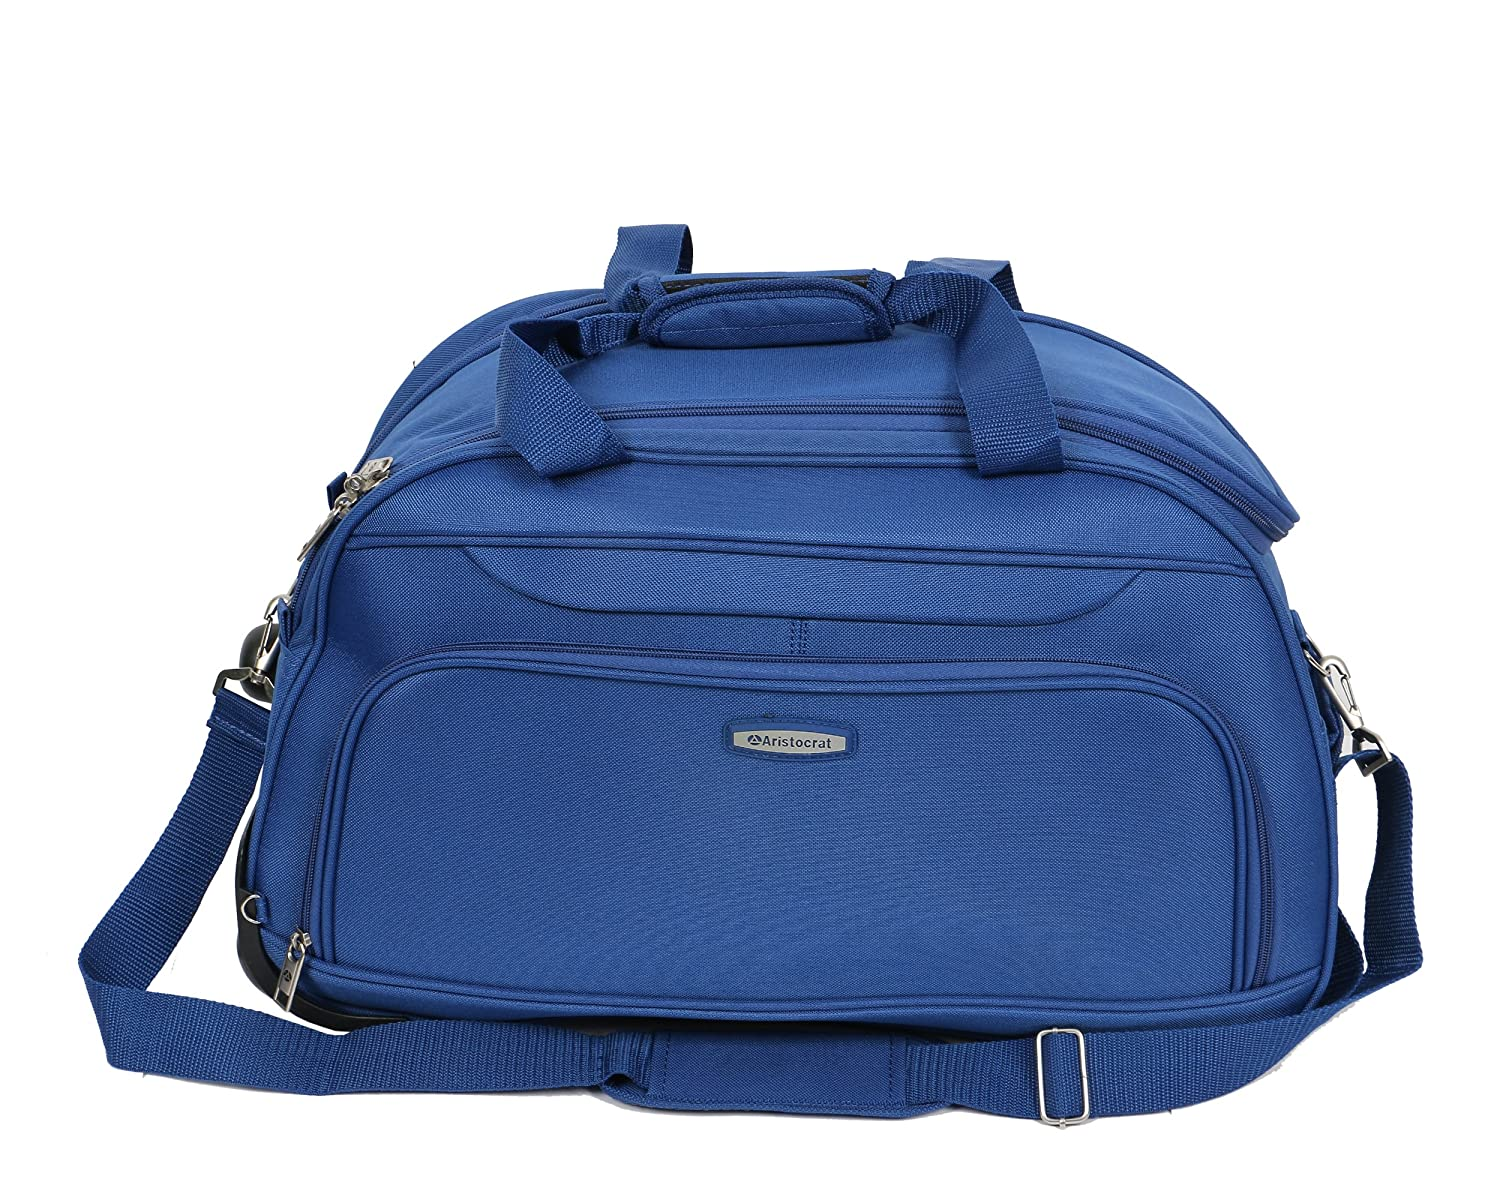 Travel Bags Online Ad Bag